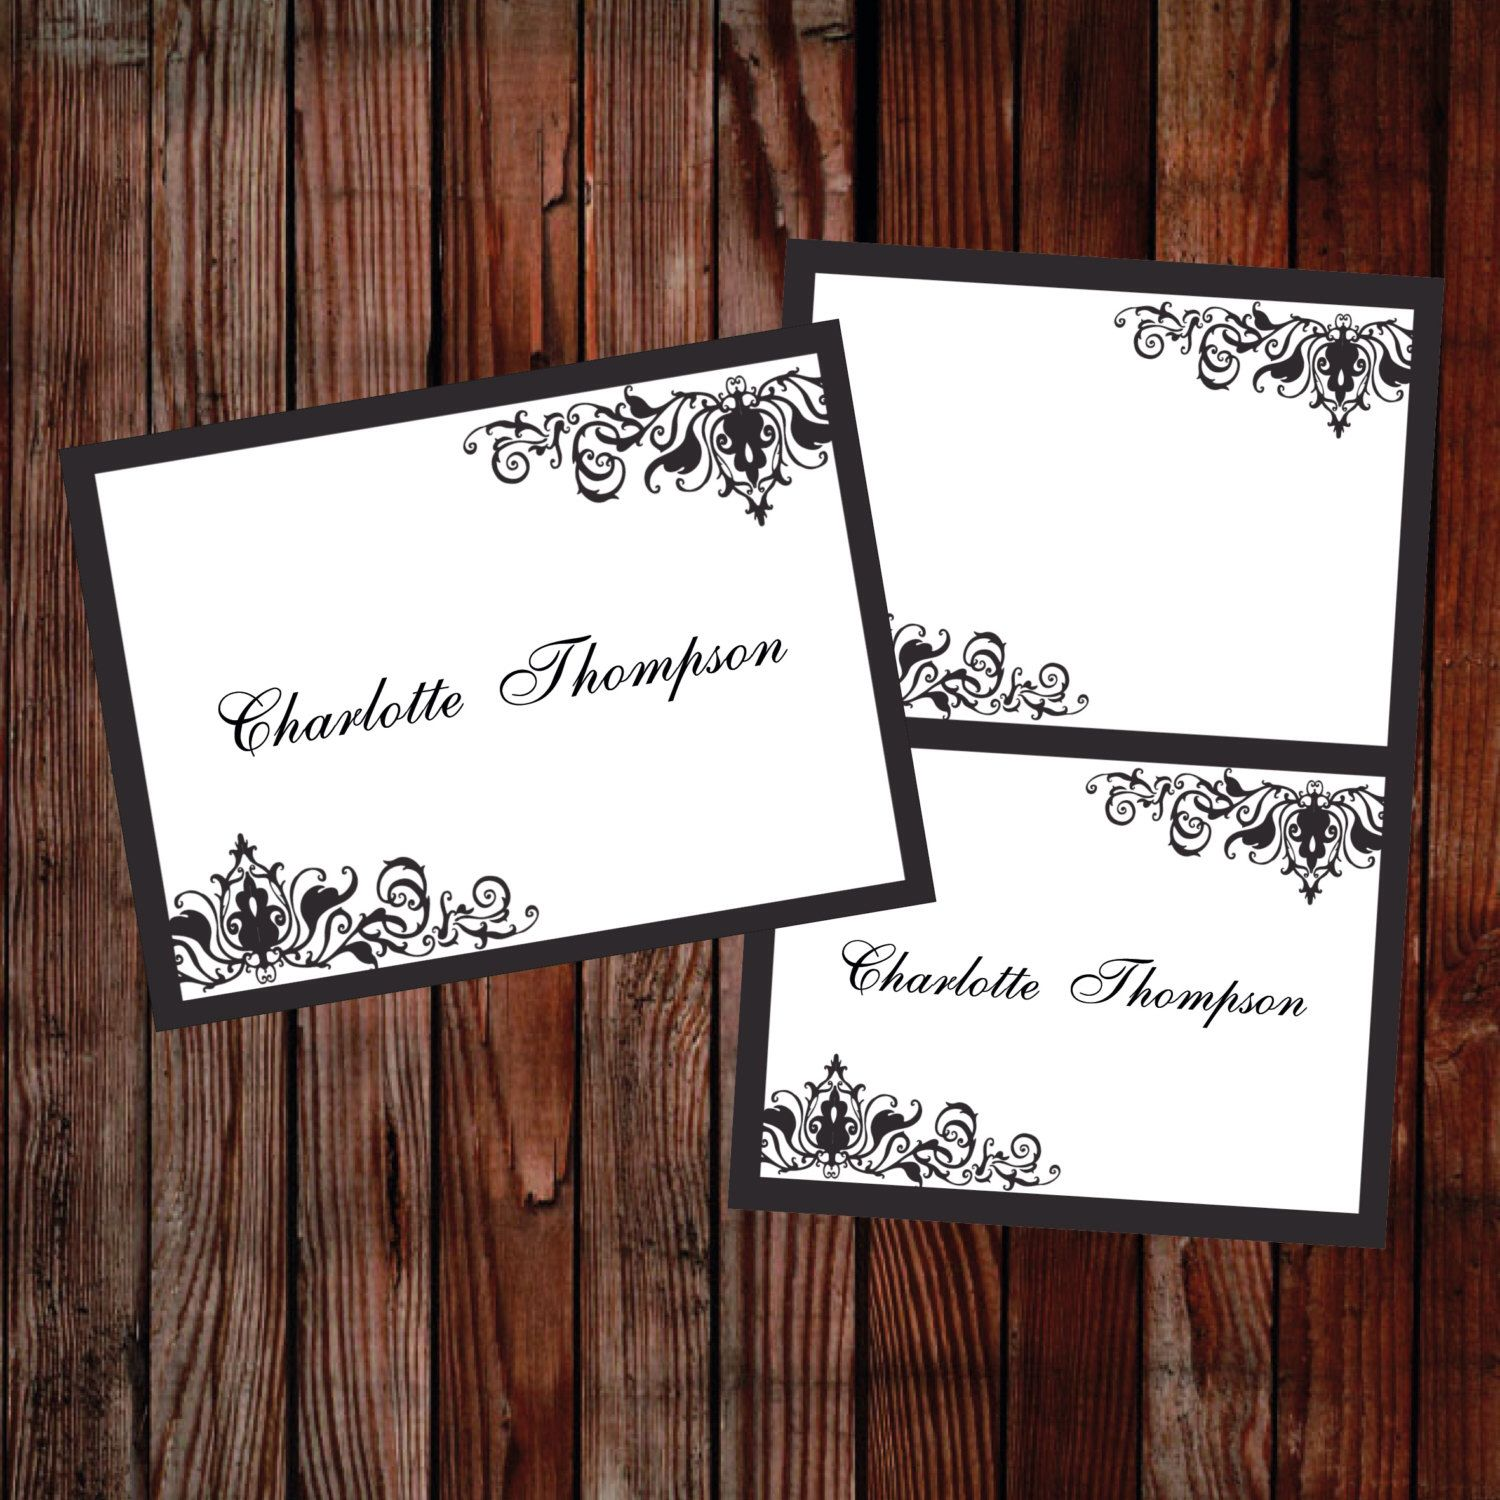 DIY Wedding place cards Black Ornate – DOWNLOADABLE Microsoft word template damask printable template